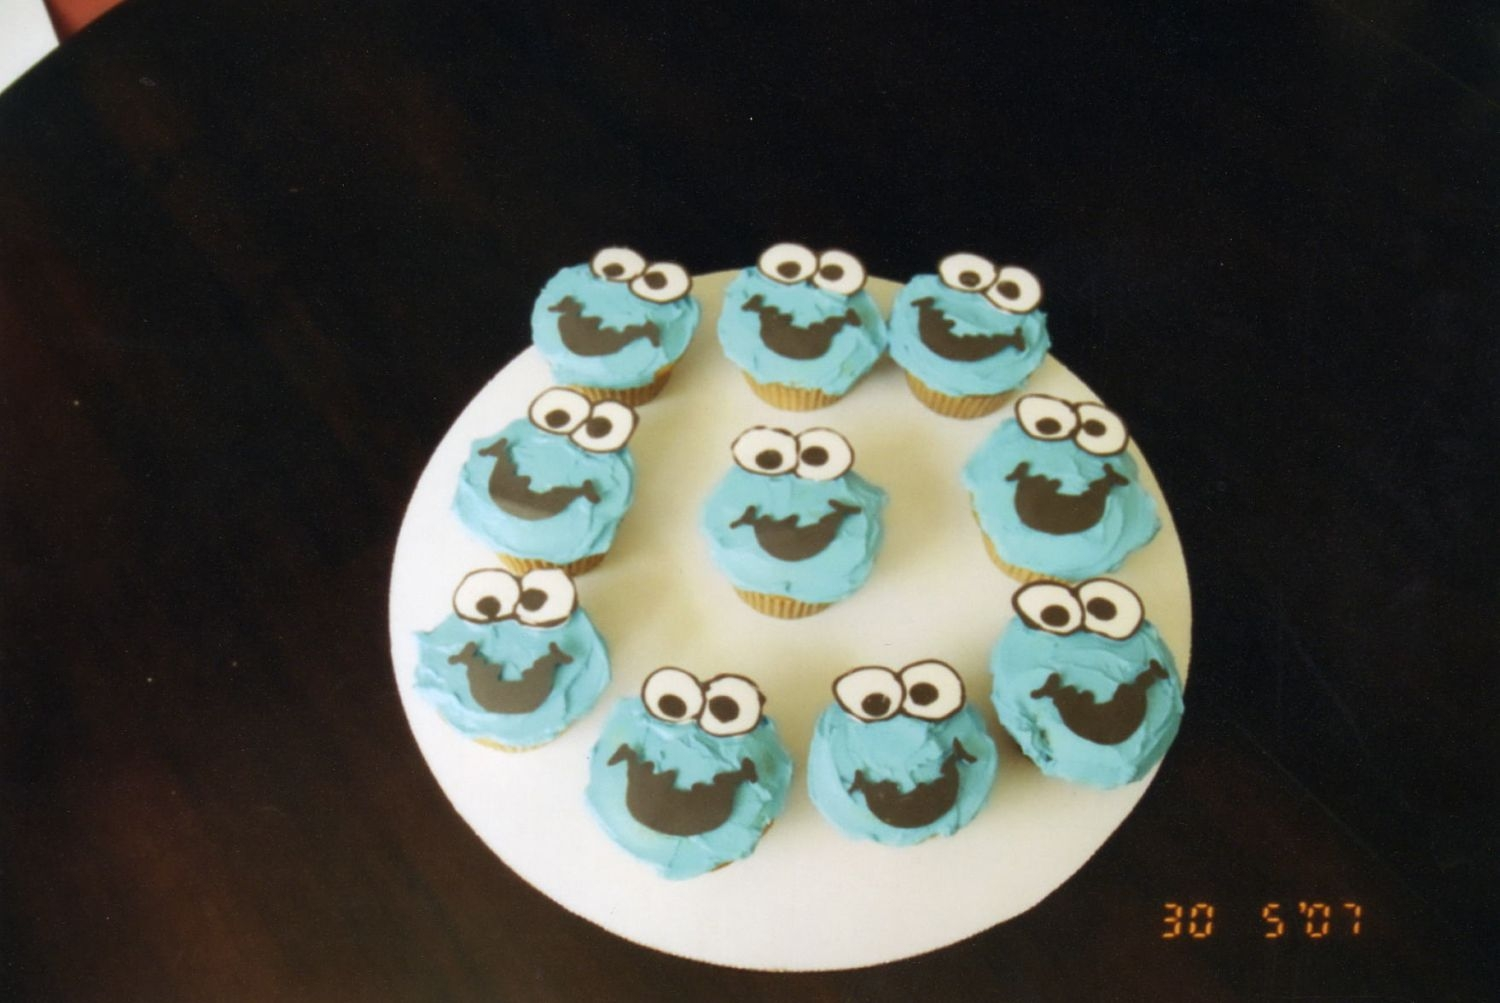 Cookie Monster Cupcakes I made them to go with the sesame street cake I made for my boy's 1st bday. The eyes and mouth are chocolate.